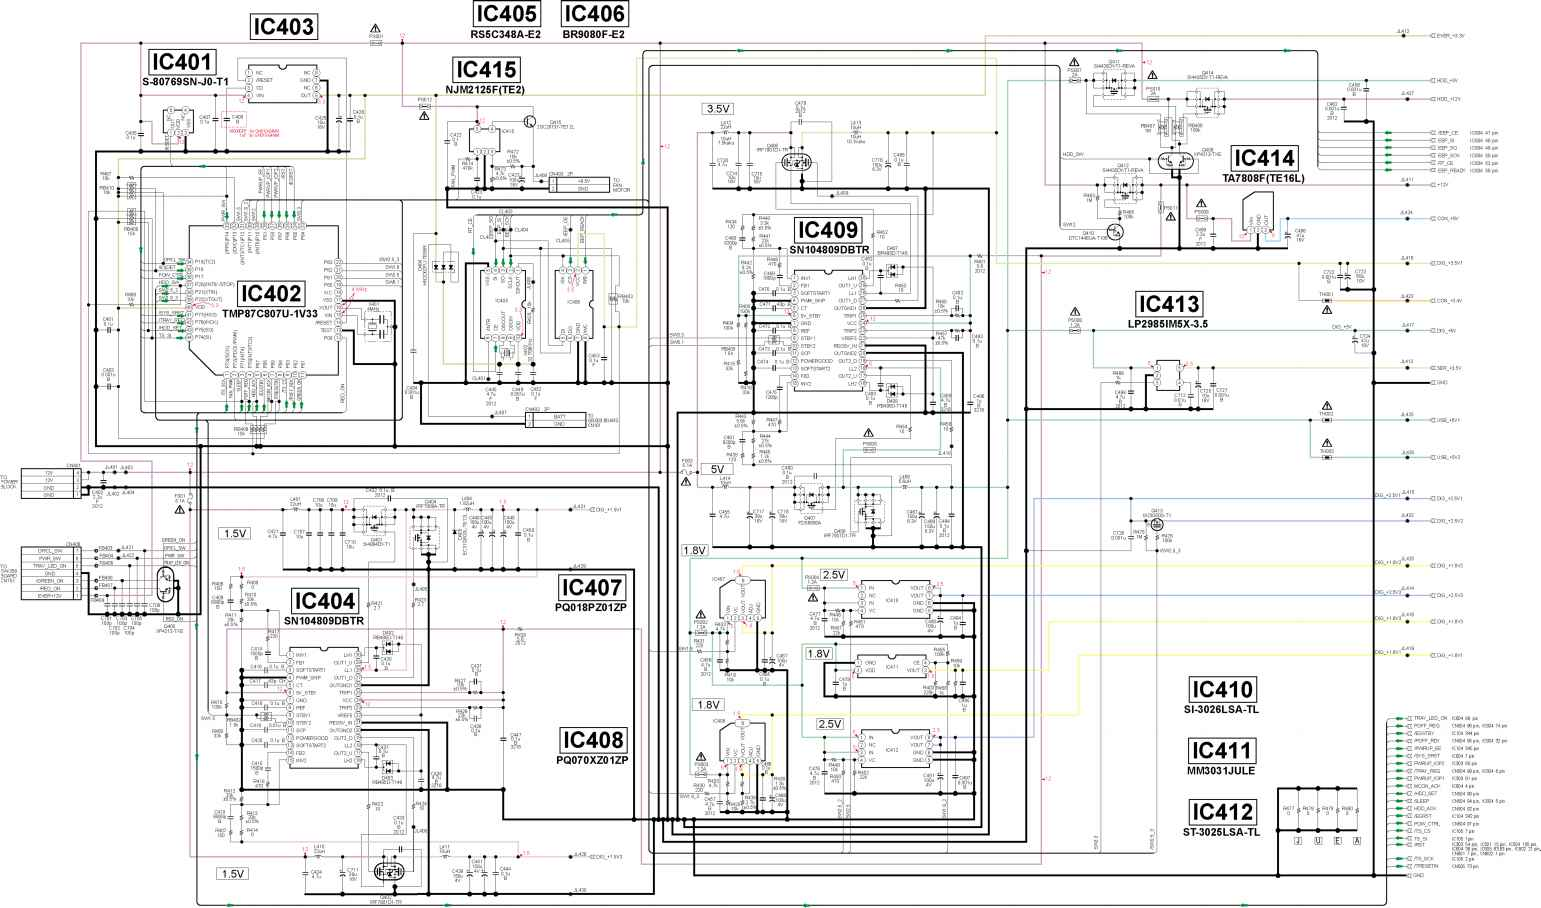 Ps 2 Keyboard Wiring Diagram. Diagrams. Auto Fuse Box Diagram